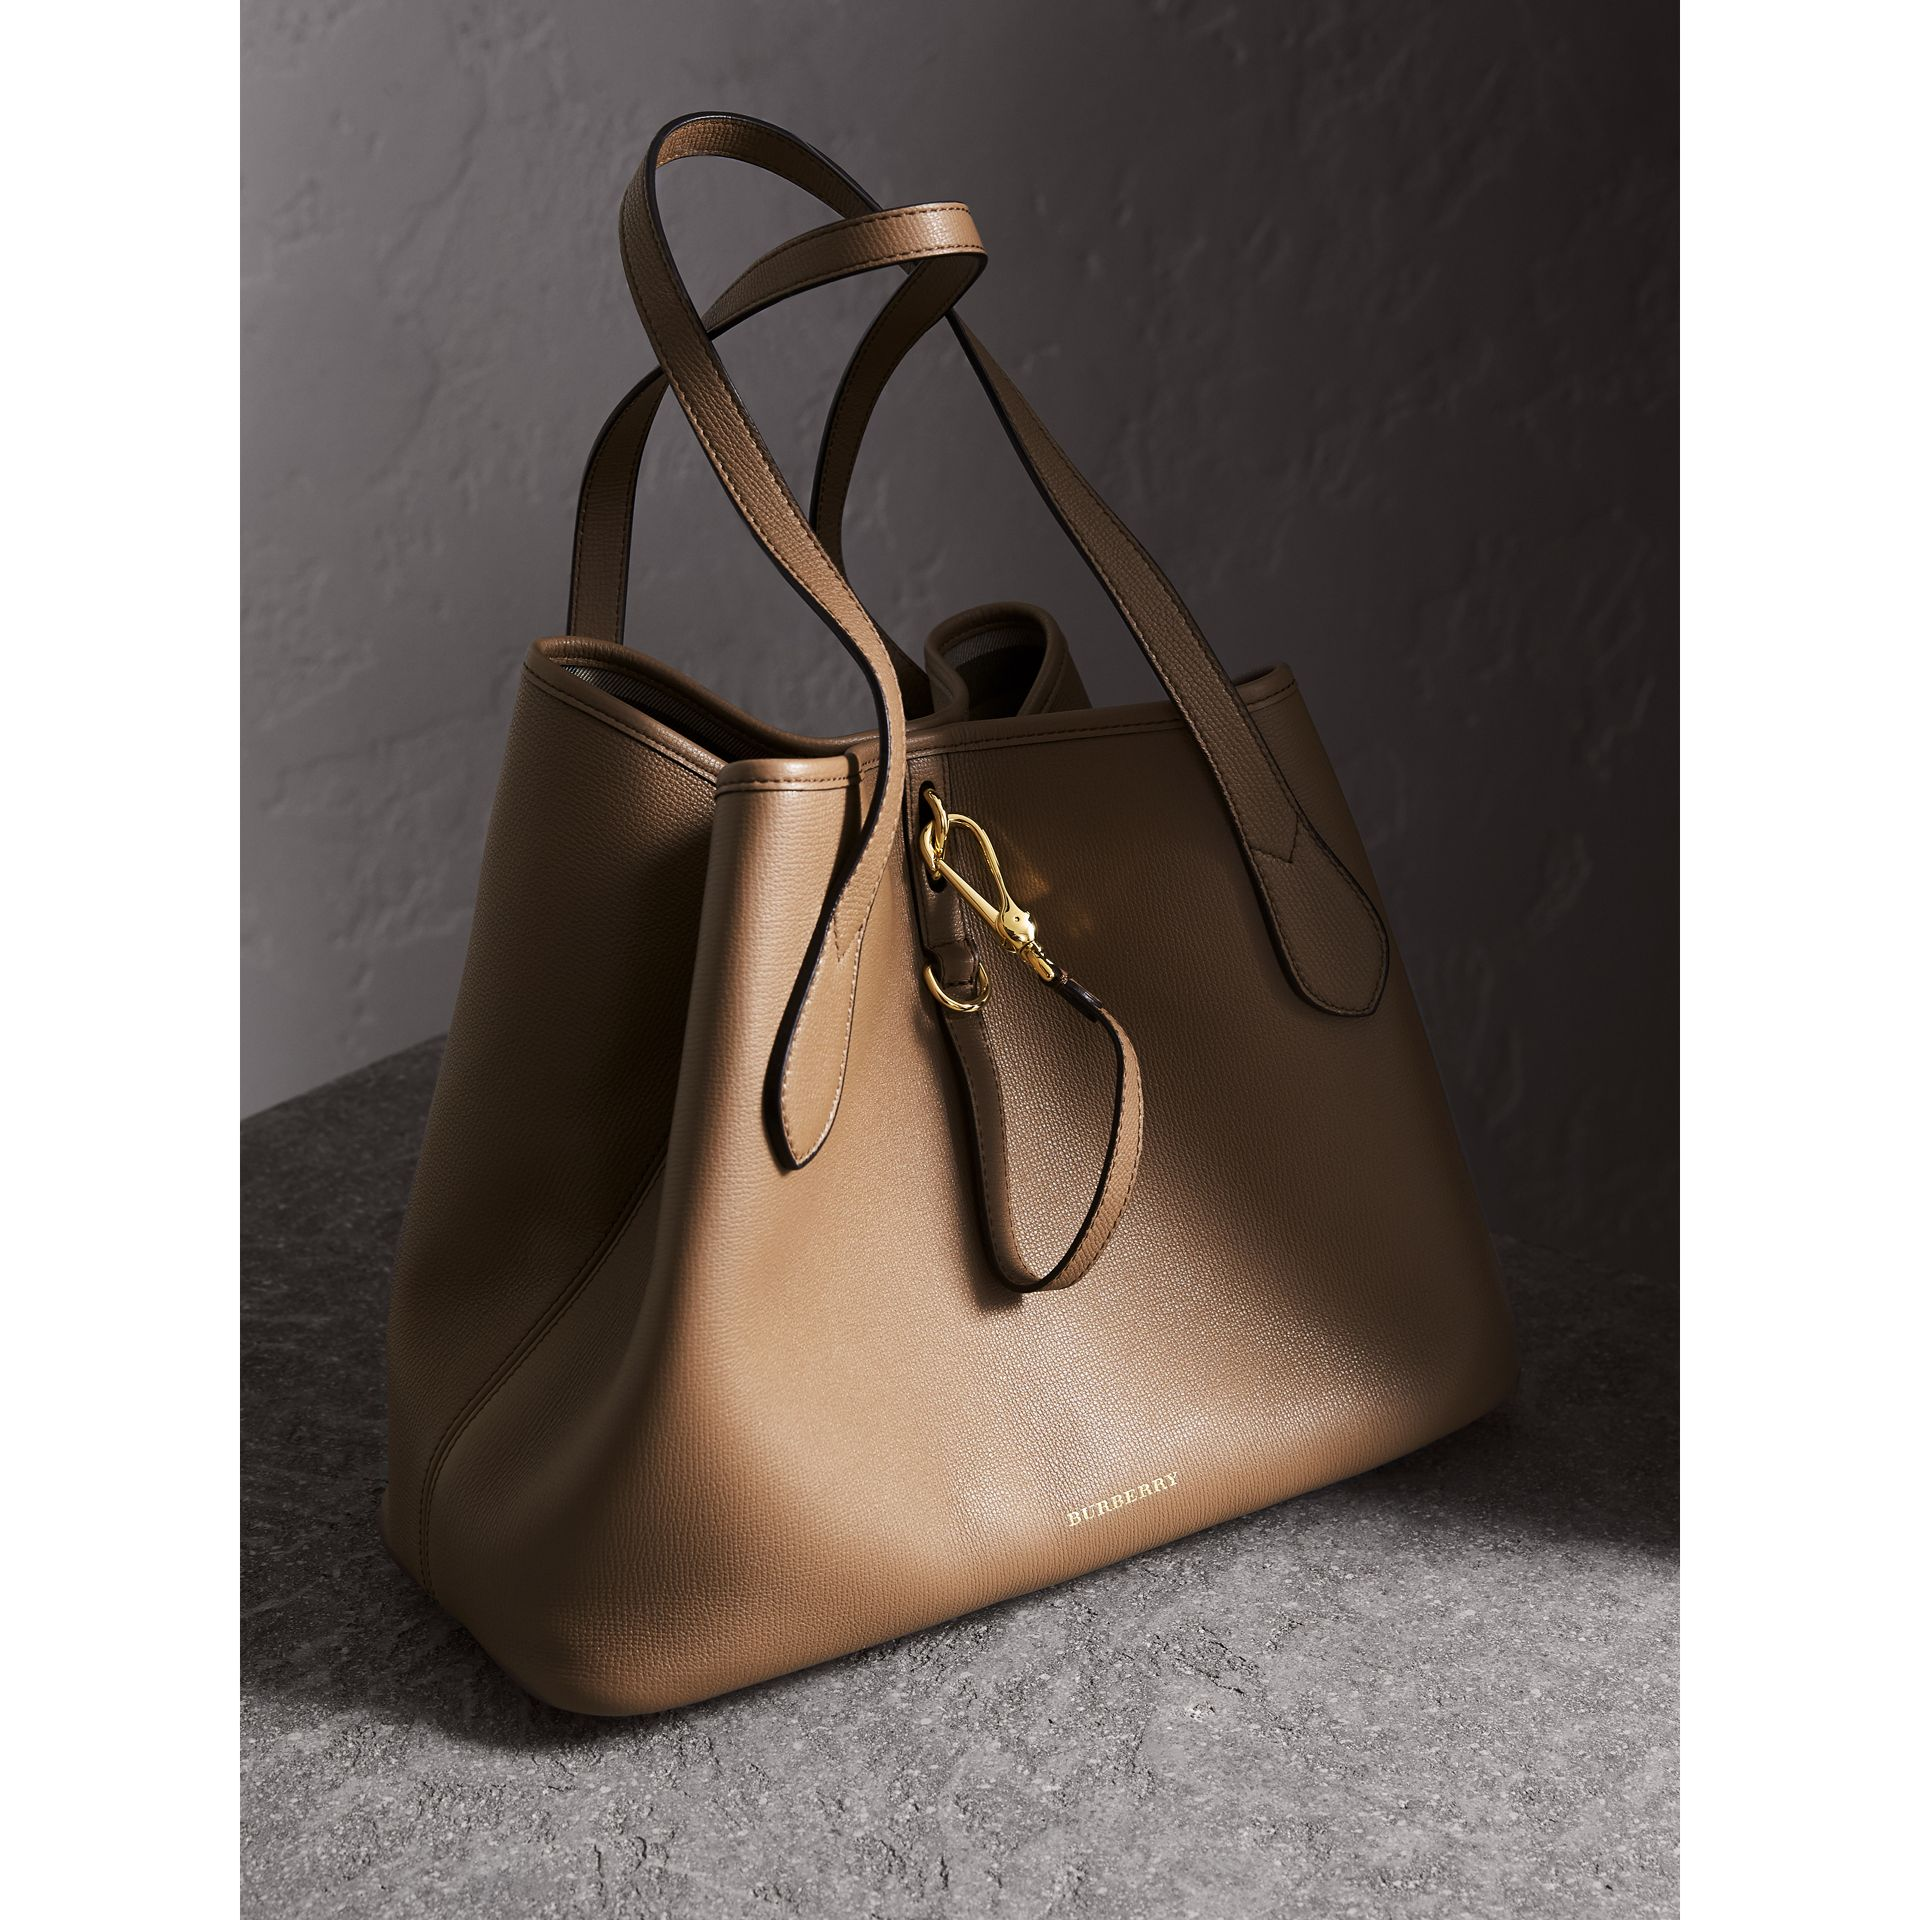 Medium Grainy Leather Tote Bag in Dark Sand - Women | Burberry Australia - gallery image 6